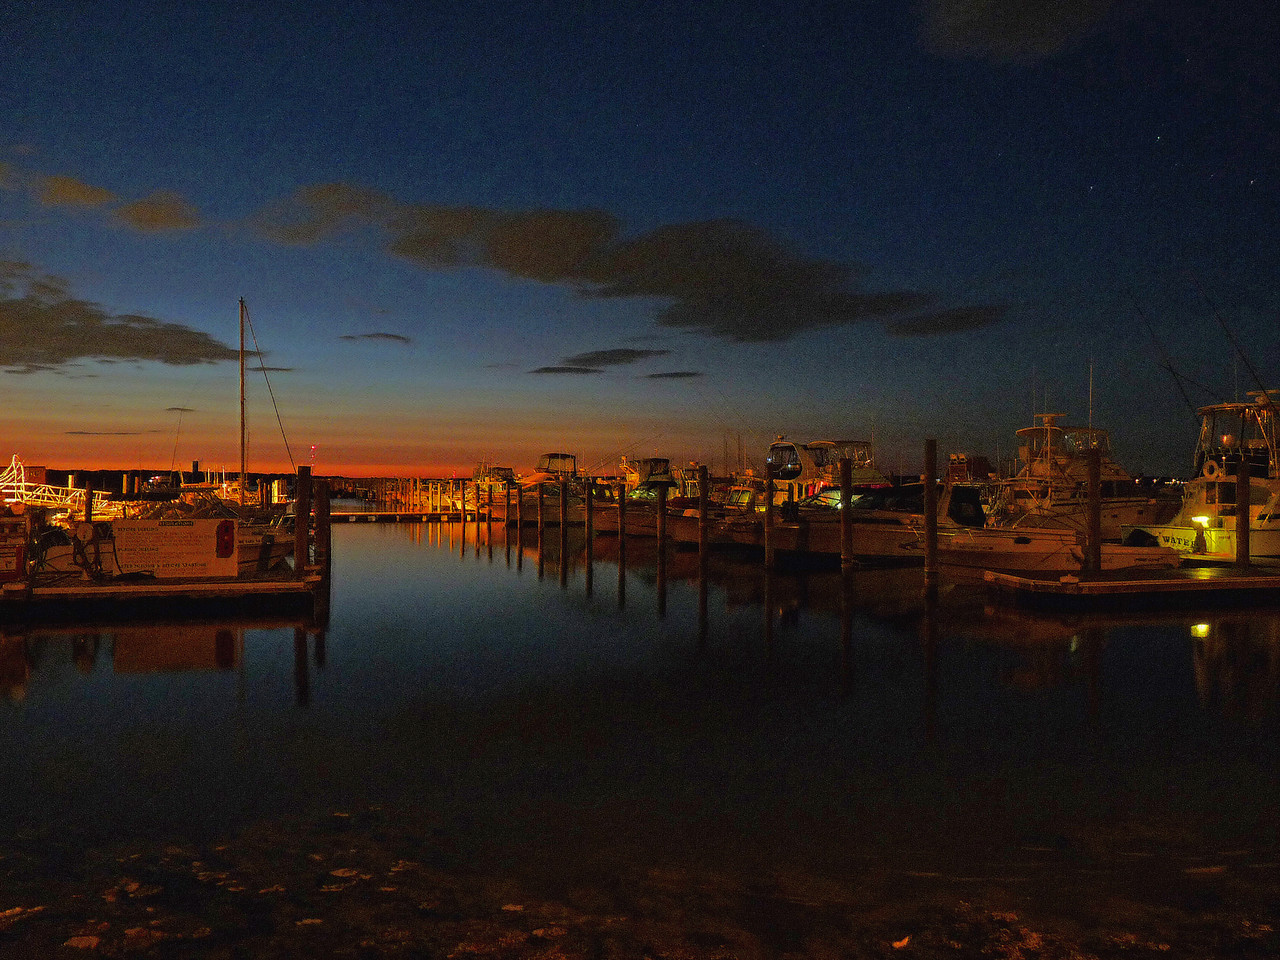 Some night photography at Earl's Marina on West Island, Fairhaven Ma.<br /> This shot was taken around 10pm, an hour and a half after sunset. I made an 8 sec exposure and then had a little PP fun with it.